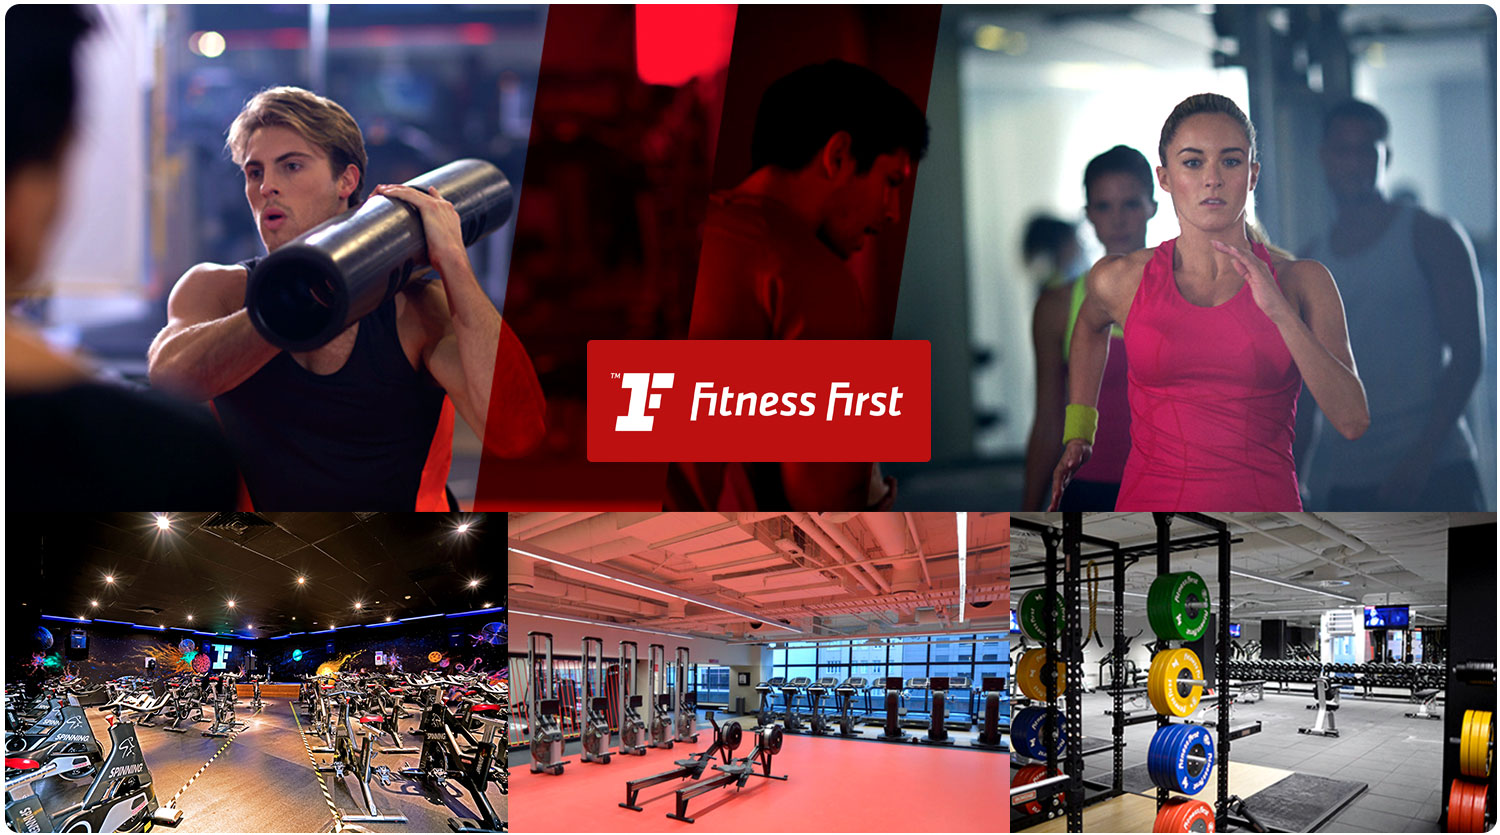 Start your Fitness Journey with Fitness First with only $14.95 for 14 days at Fitness First Glen Waverley VIC. Experience our first class gym and freestyle classes inc. Zumba, Pilates, Yoga, HIIT, Les Mills and more. Take the first step with Fitness First Glen Waverley VIC.